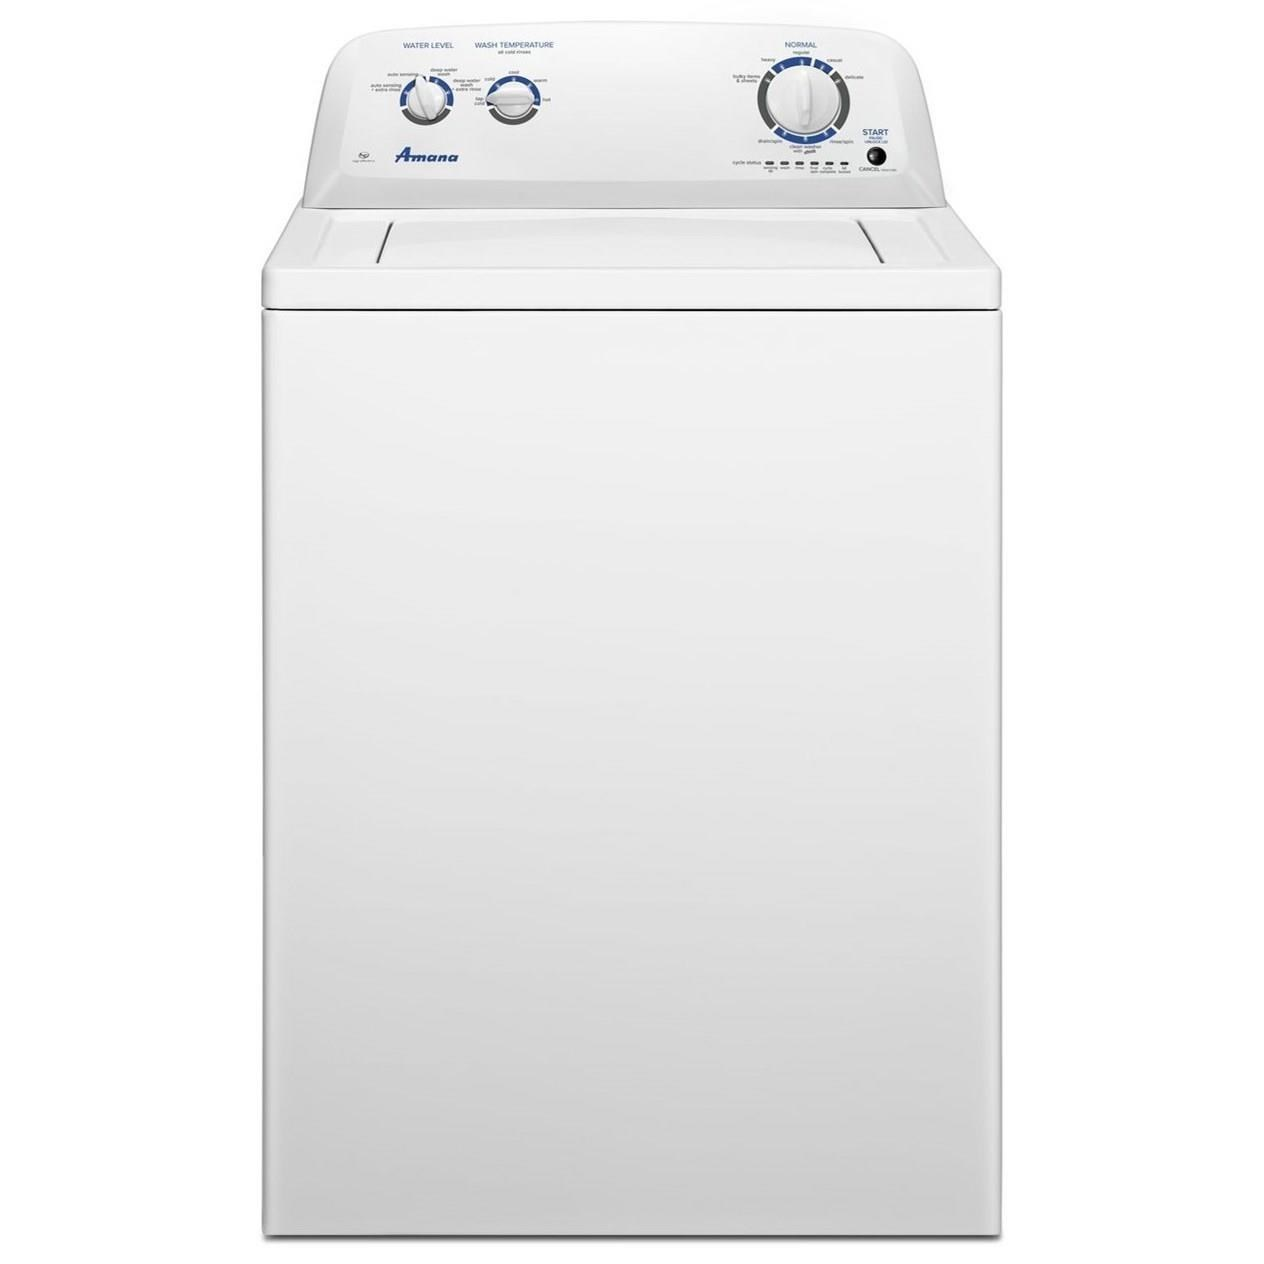 Amana Amana 3 5 Cu Ft Top Load Washer With Dual Action